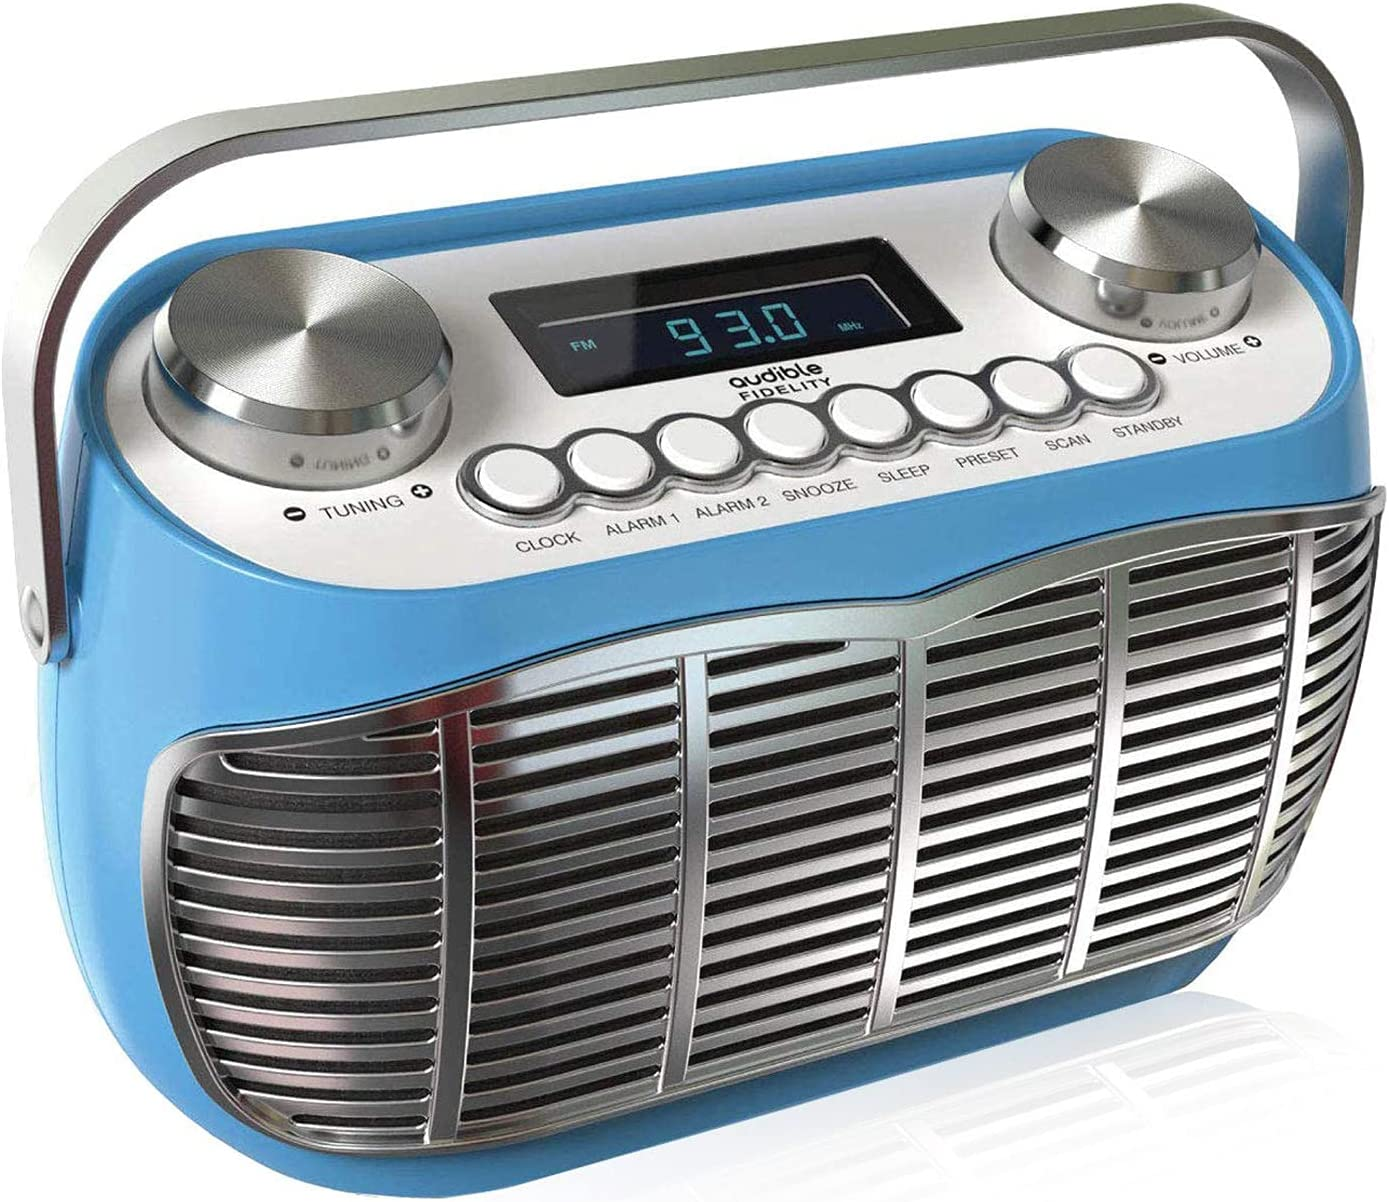 AM FM Portable Radio Max 76% OFF Battery Easy-to-use Operated Powered or Retro Porta AC